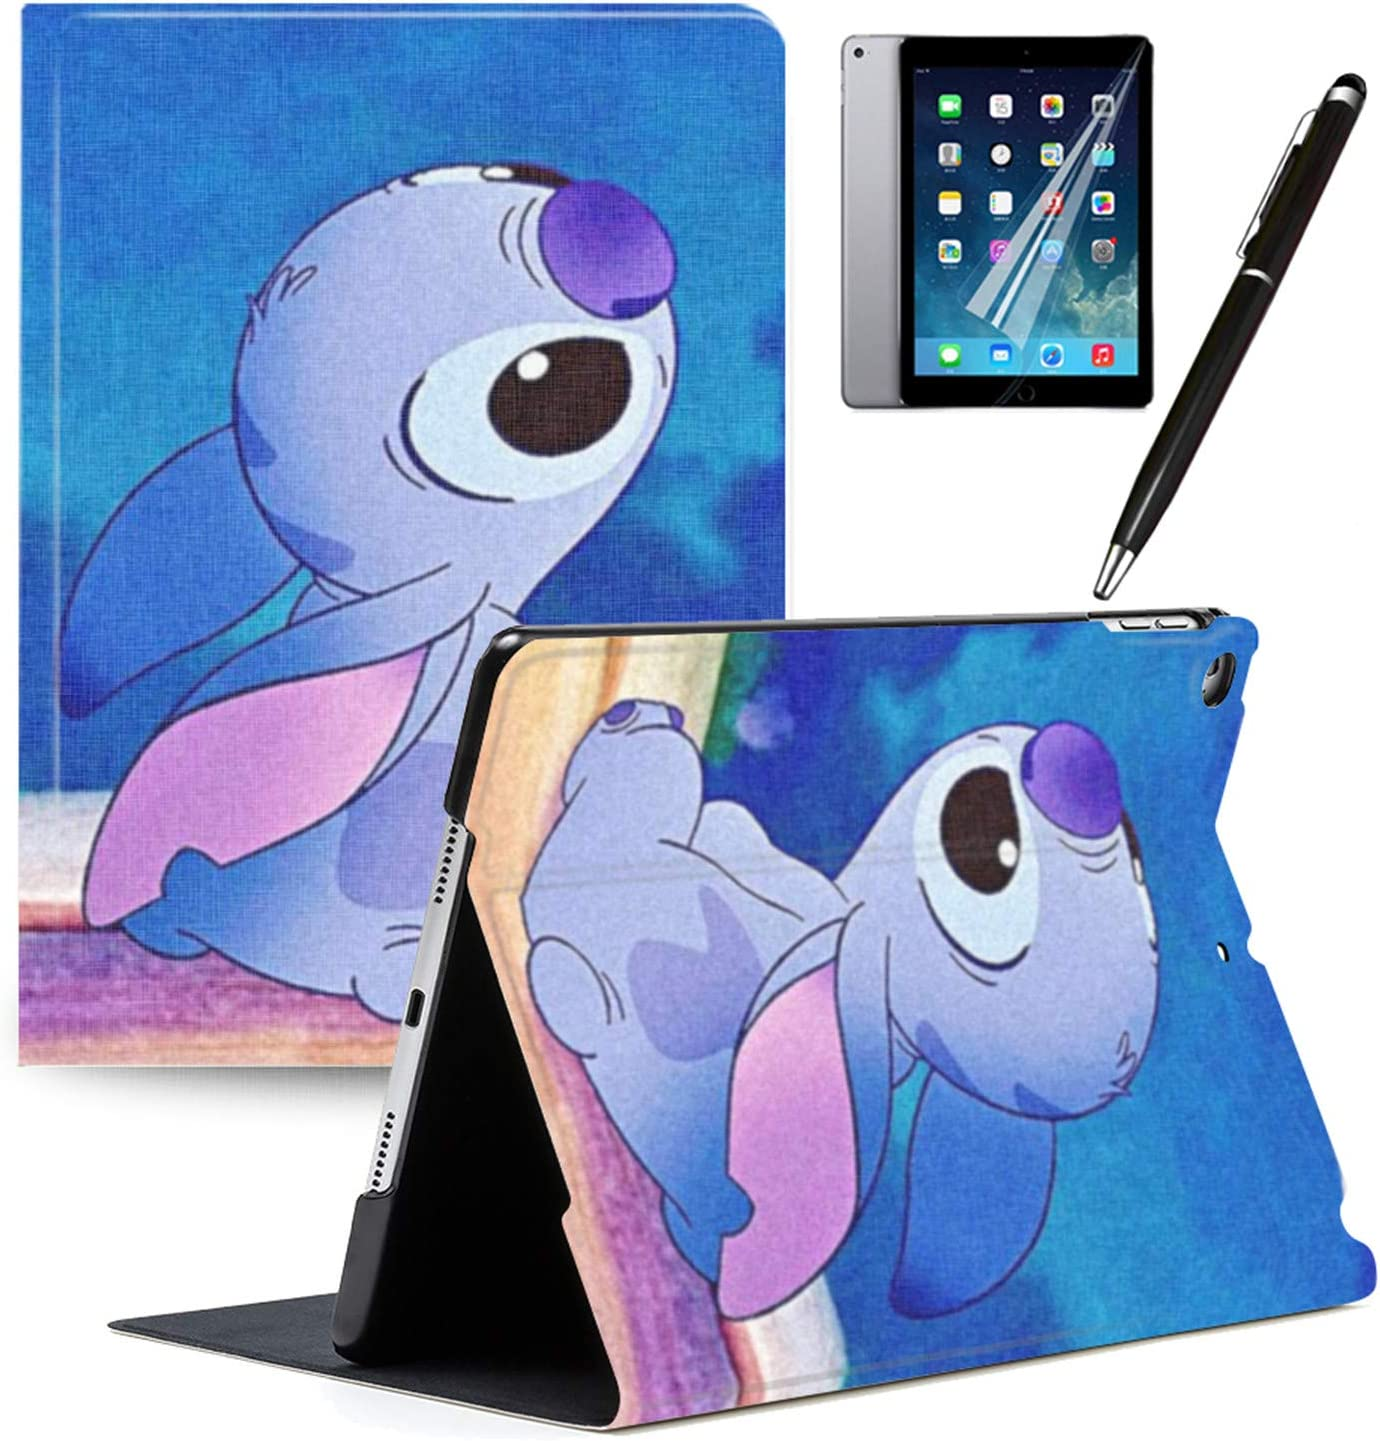 iPad 2018(6th Gen) iPad 2017(5th Gen) Case Cartoon Lilo & Stitch Cartoon Protection Lightweight PU Leather Smart Auto Sleep/Wake Cover Also Fit iPad Air 2 / iPad Air#A